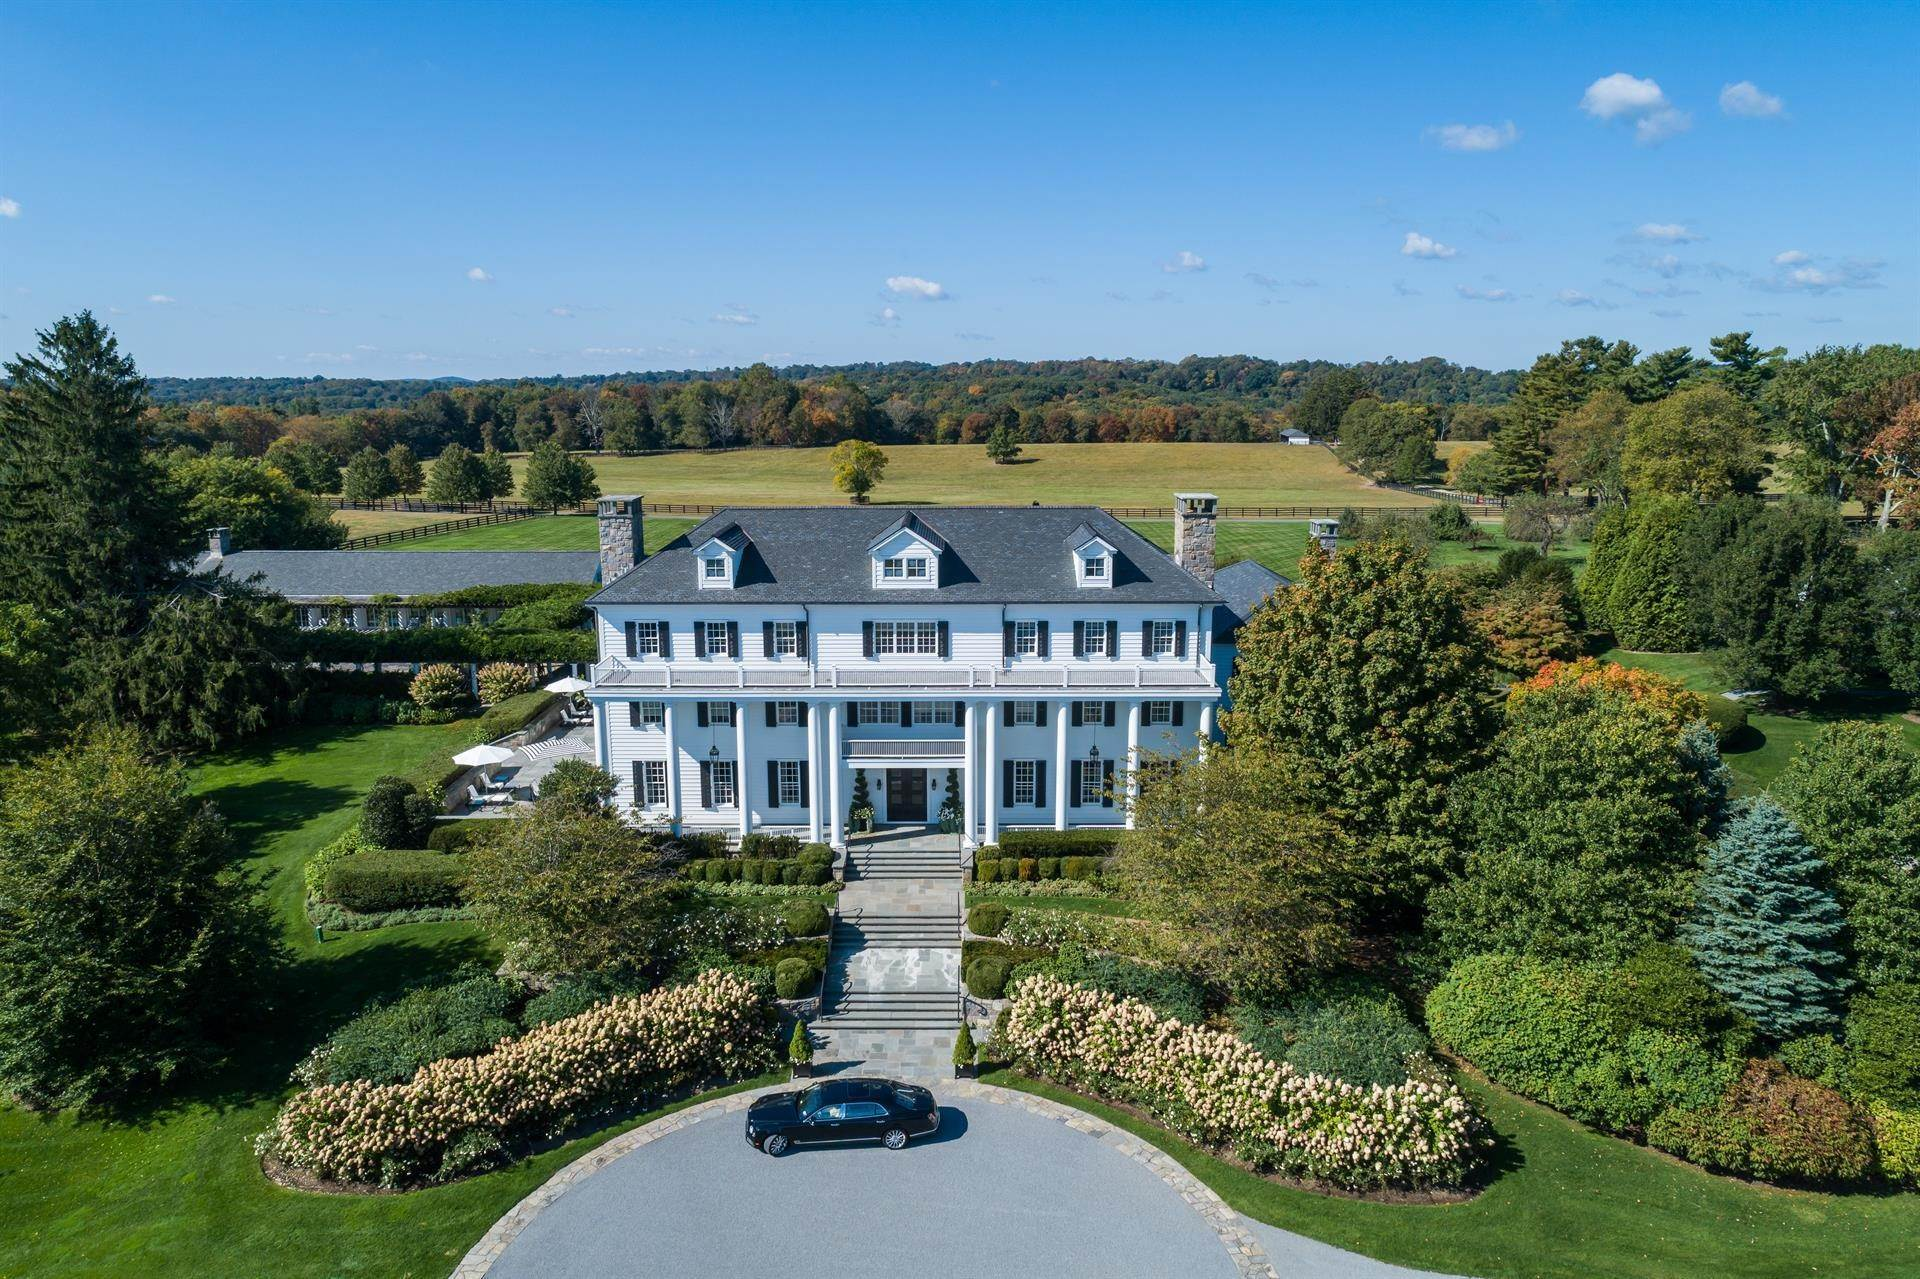 Cavallo Proprietà alle Stonewall Farm, A Magnificent 740 Acre Estate in Westchester County New York, Stati Uniti